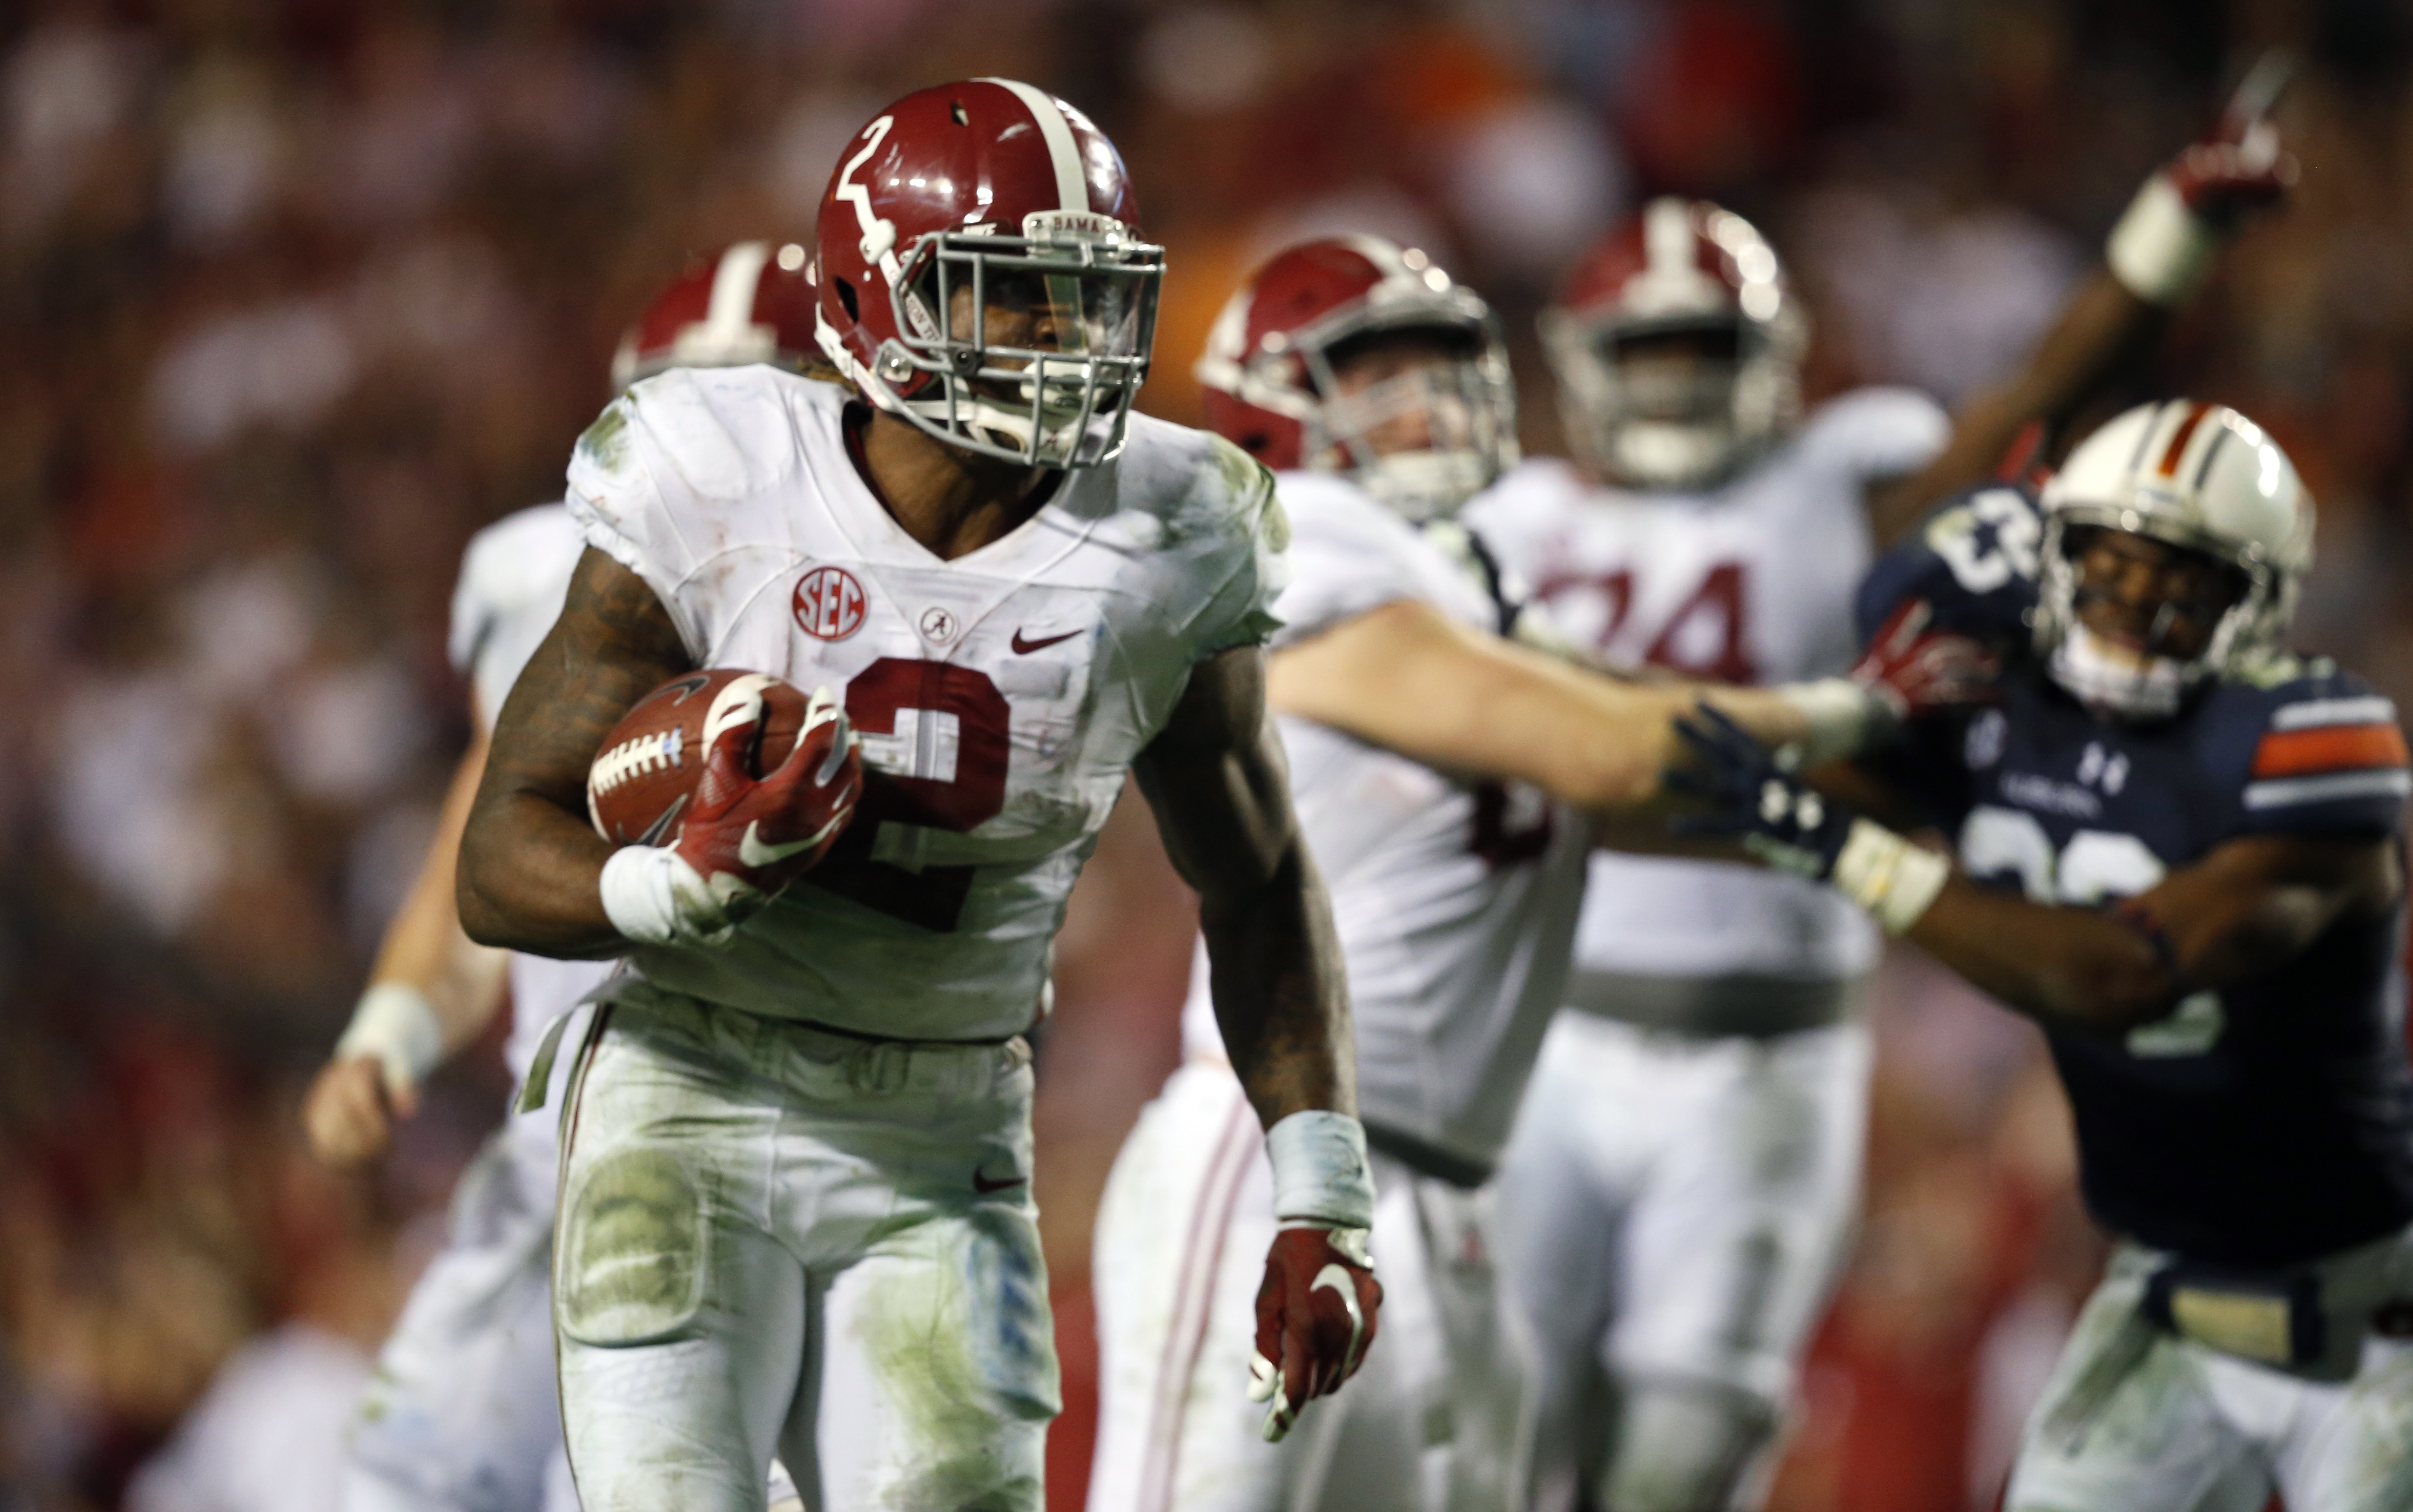 FILE - In this Nov. 28, 2015, file photo, Alabama running back Derrick Henry (2) runs the ball and scores a touchdown during the second half of an NCAA college football game against Auburn in Auburn, Ala. No. 2 Alabama's offensive methods have changed but